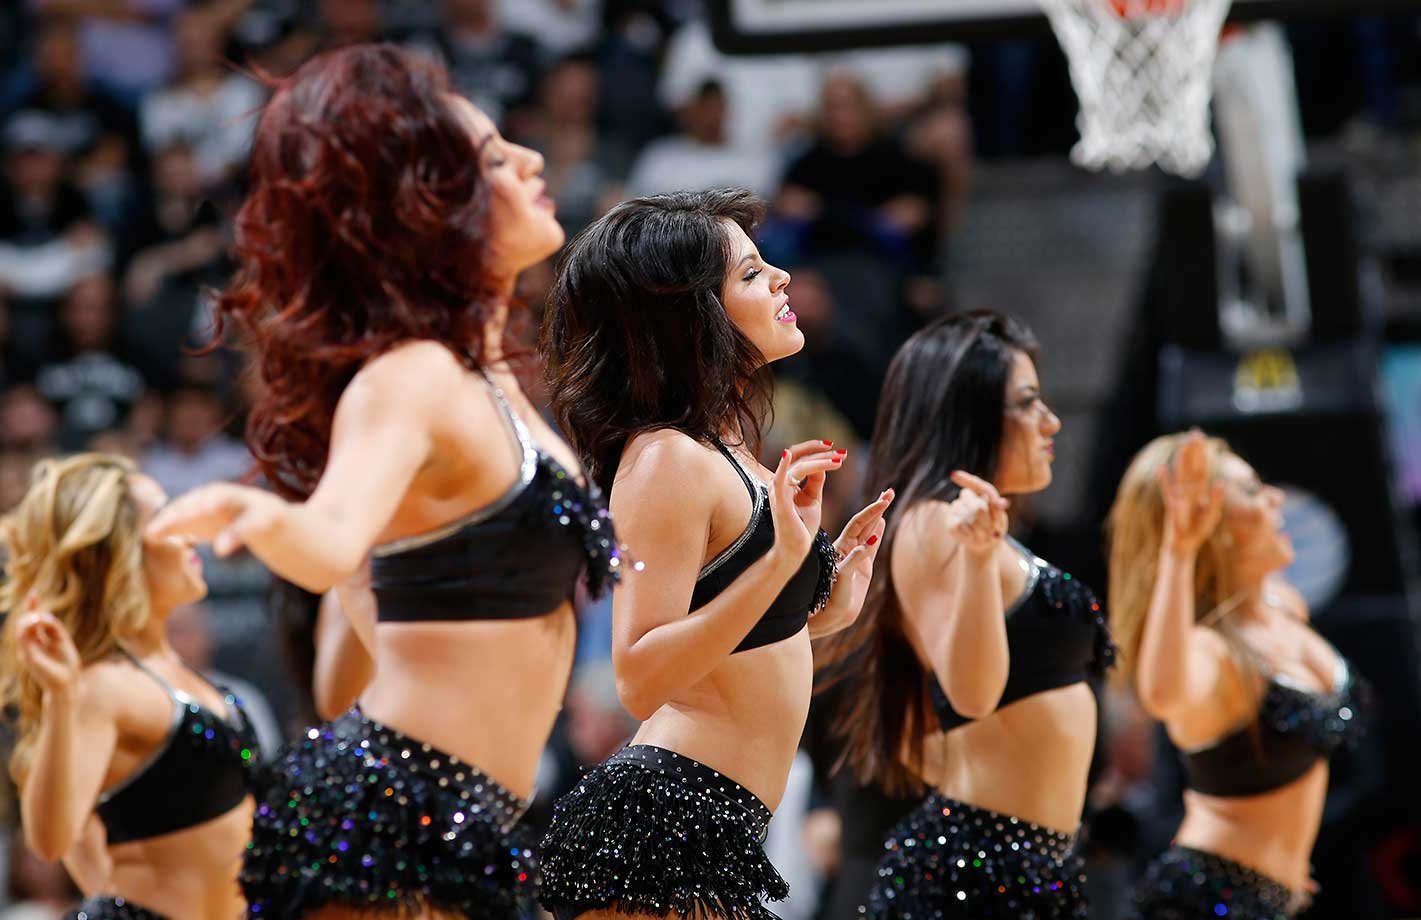 The San Antonio Spurs dance team is seen during the game against the Orlando Magic at the AT&T Center in San Antonio.